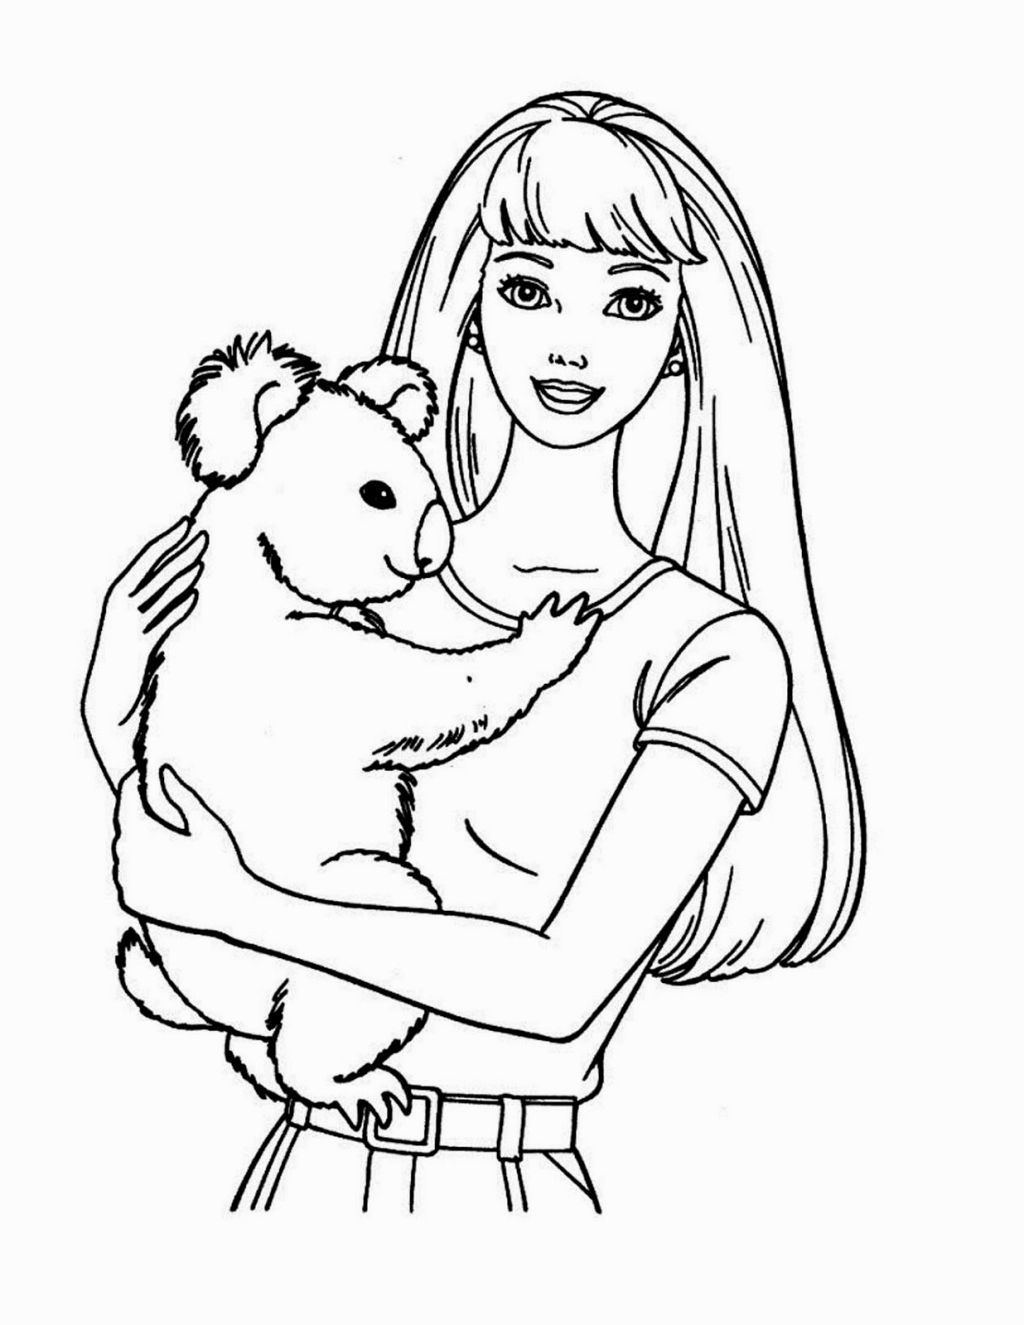 Barbie Coloring Pages The Doll Palace Coloring Page